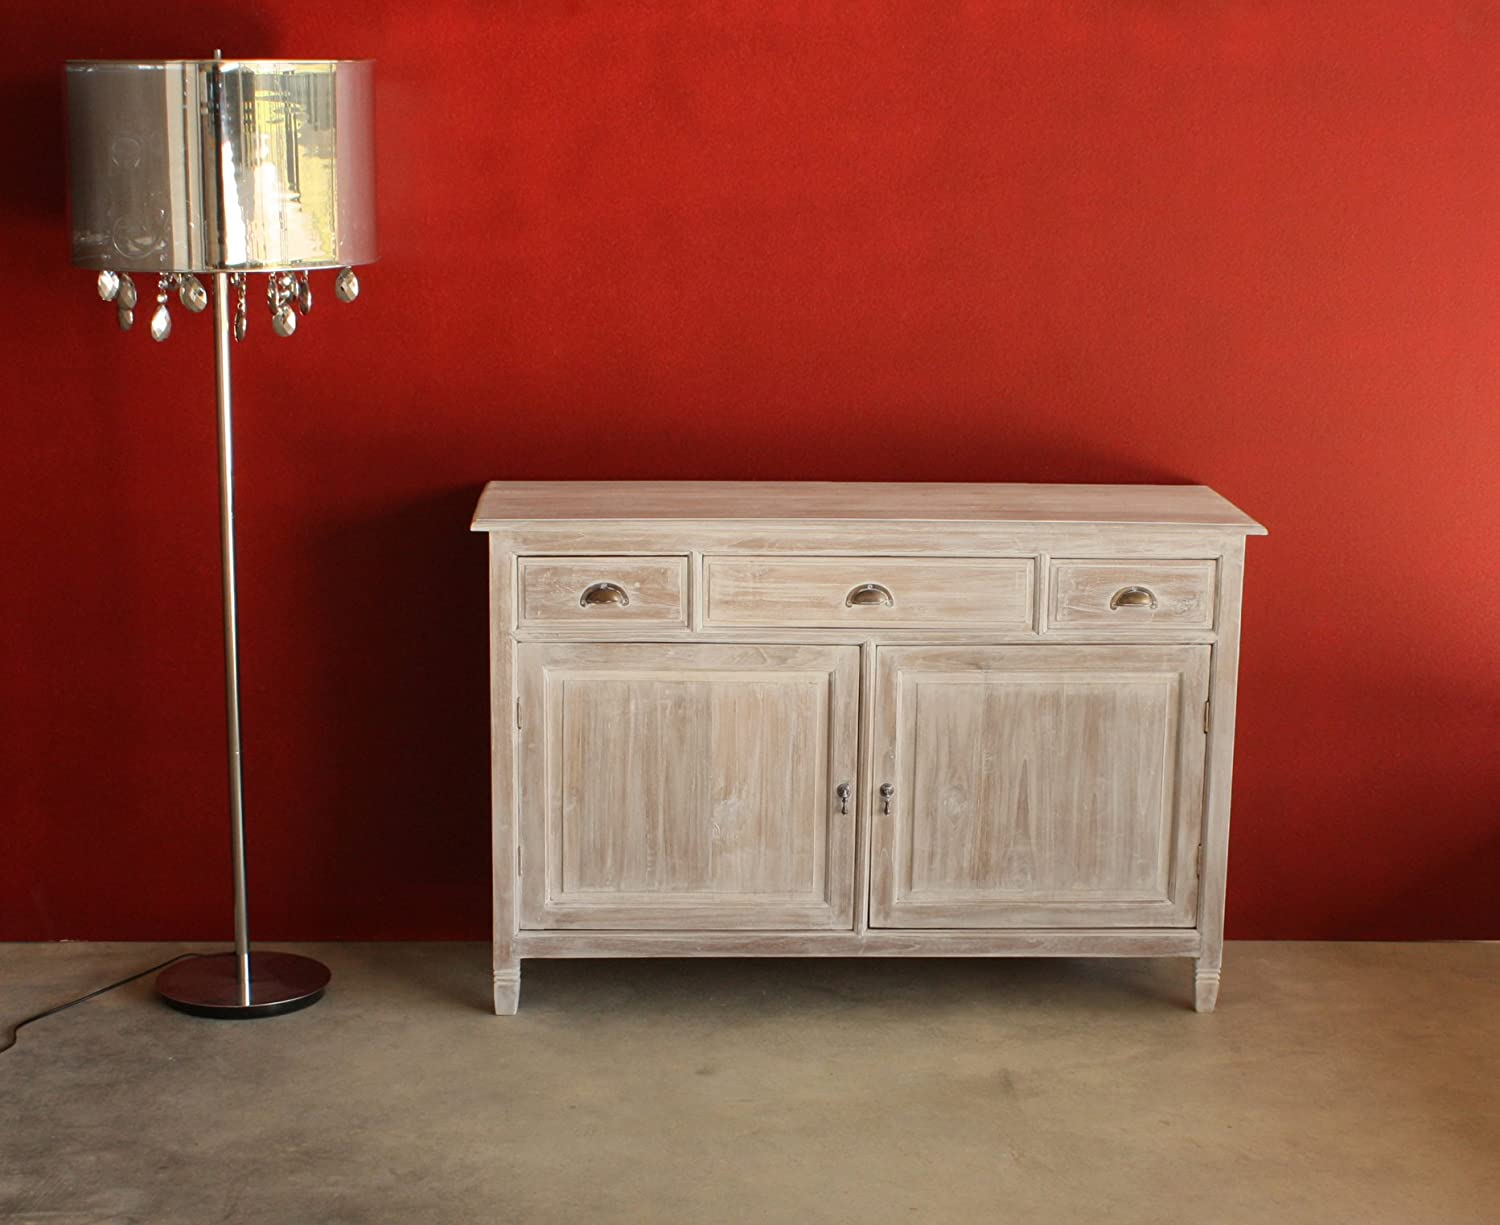 Top mobile buffet shabby chic provenzale bianco decapato - Mobile bianco decapato ...